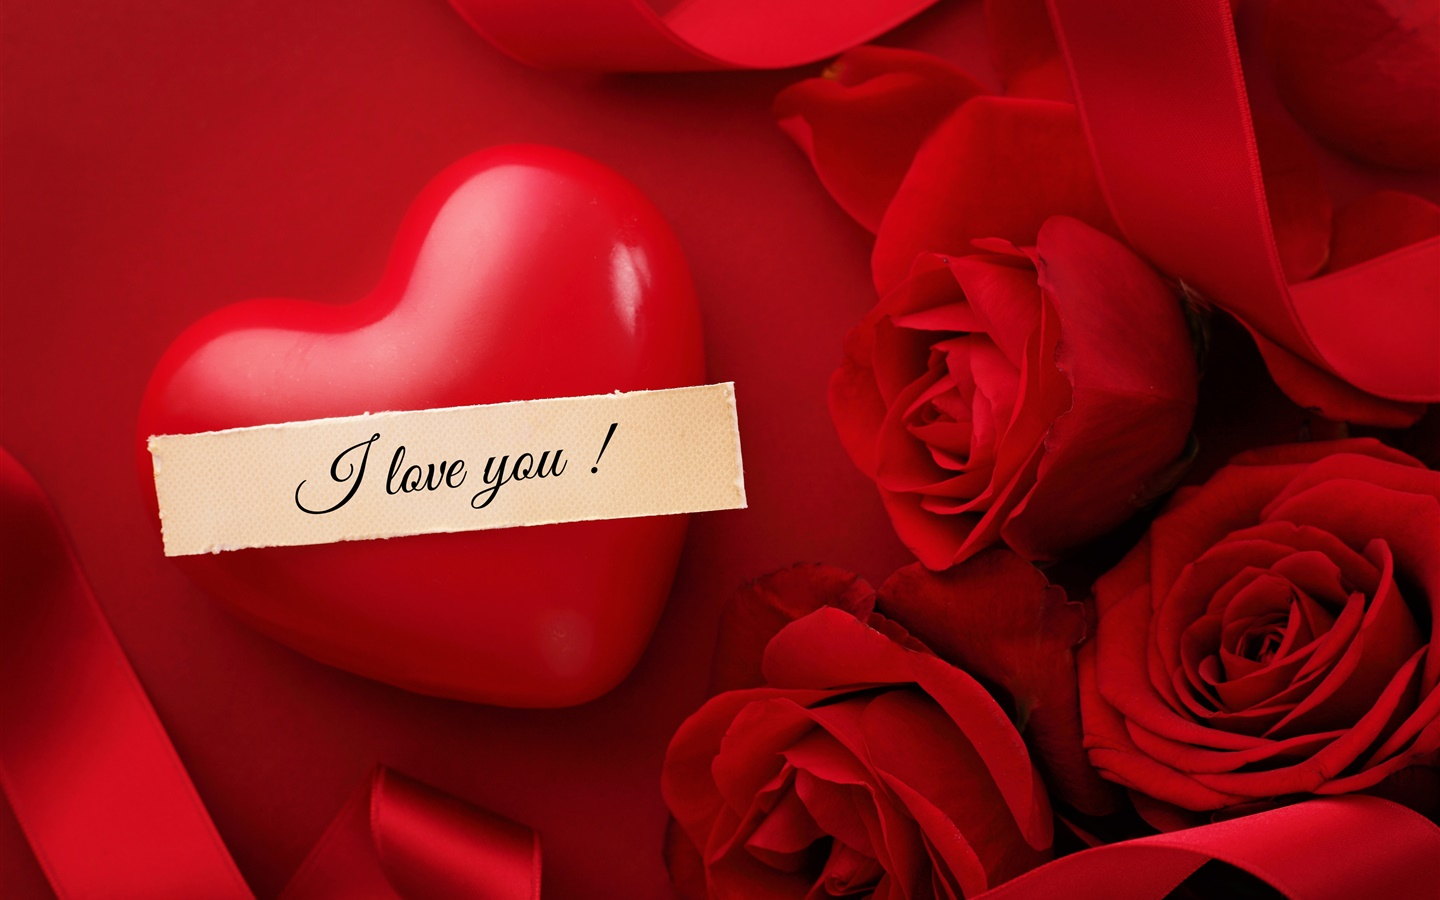 Valentine's Day, I love you, heart, red rose flowers 1440x900 wallpaper